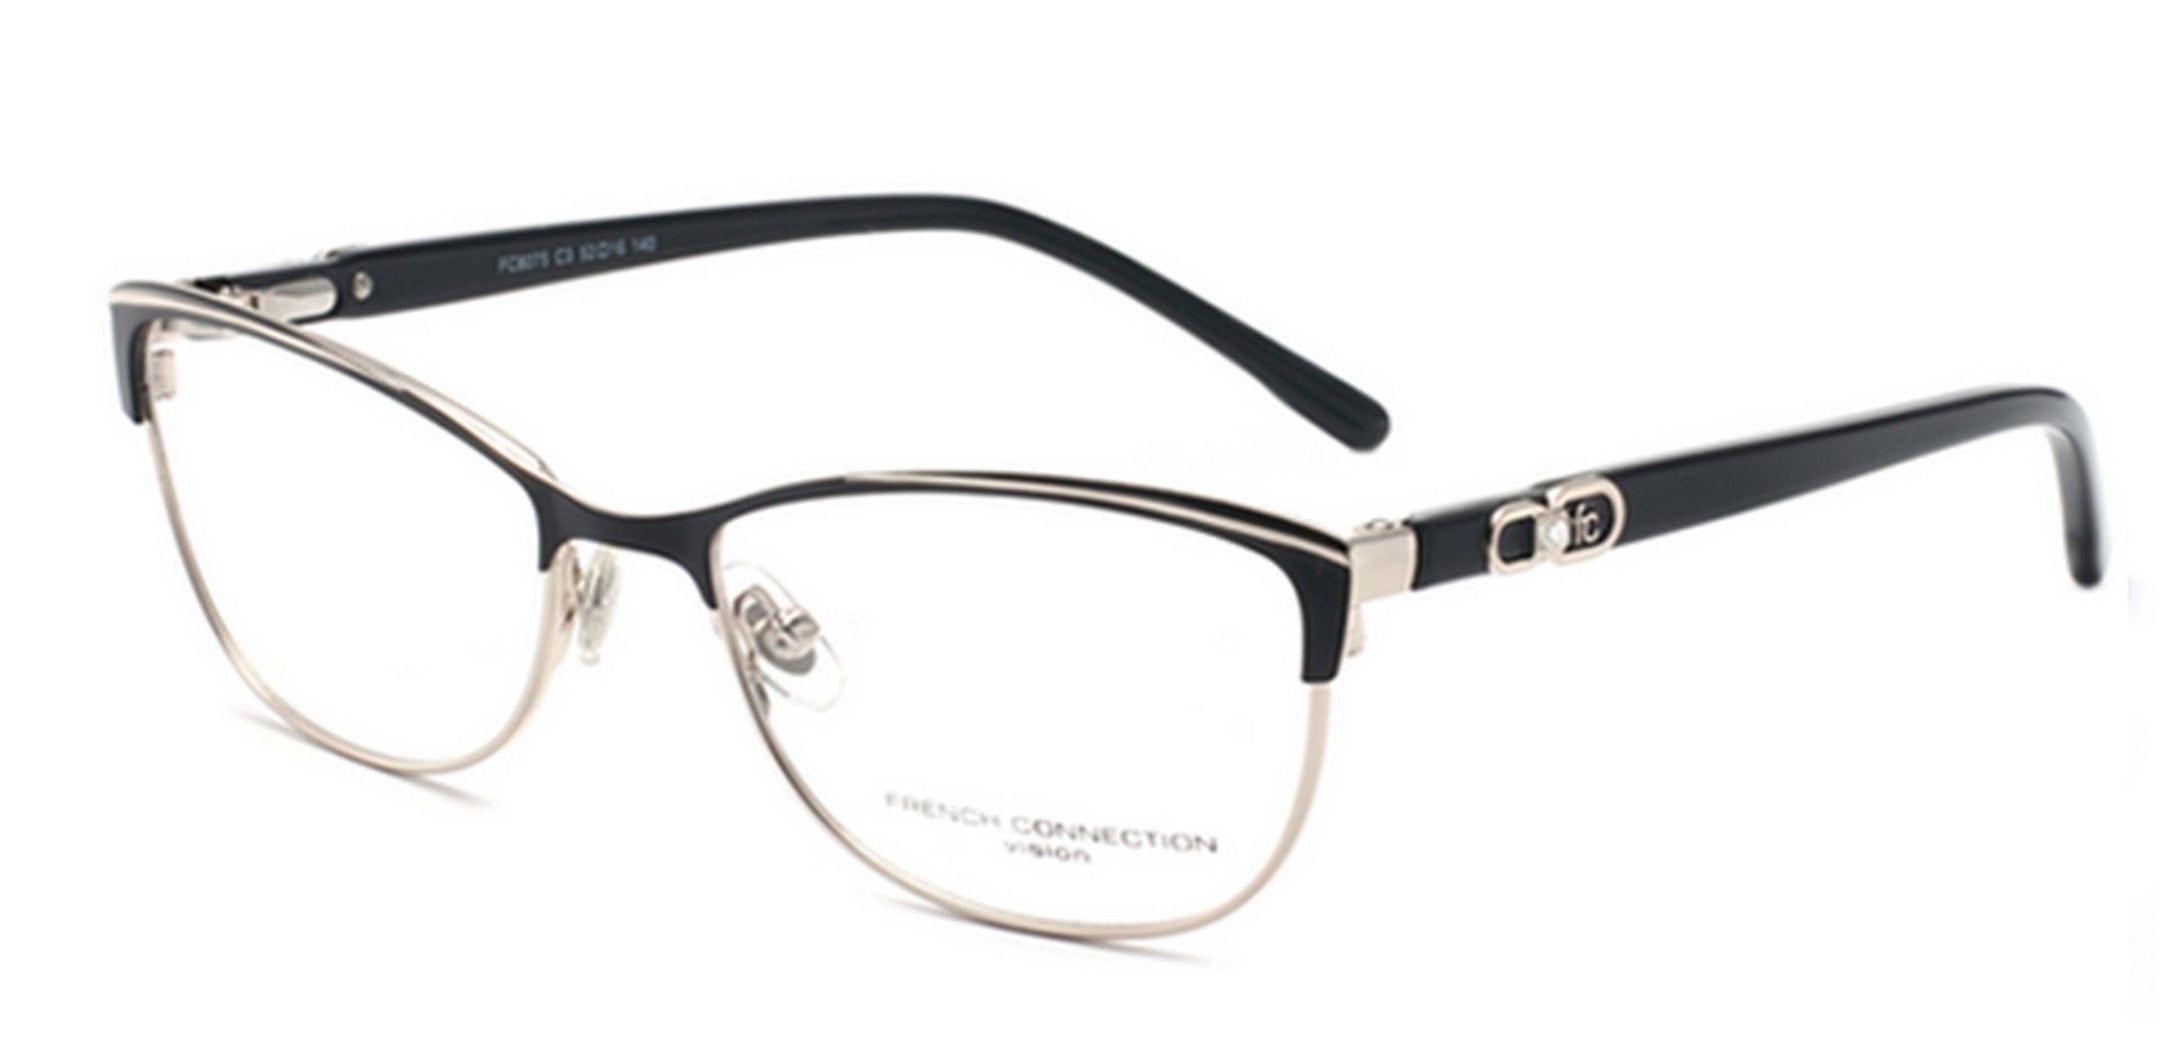 French Connection FC-8075-C3 Matte Black/Gold Cateye Eyeglasses